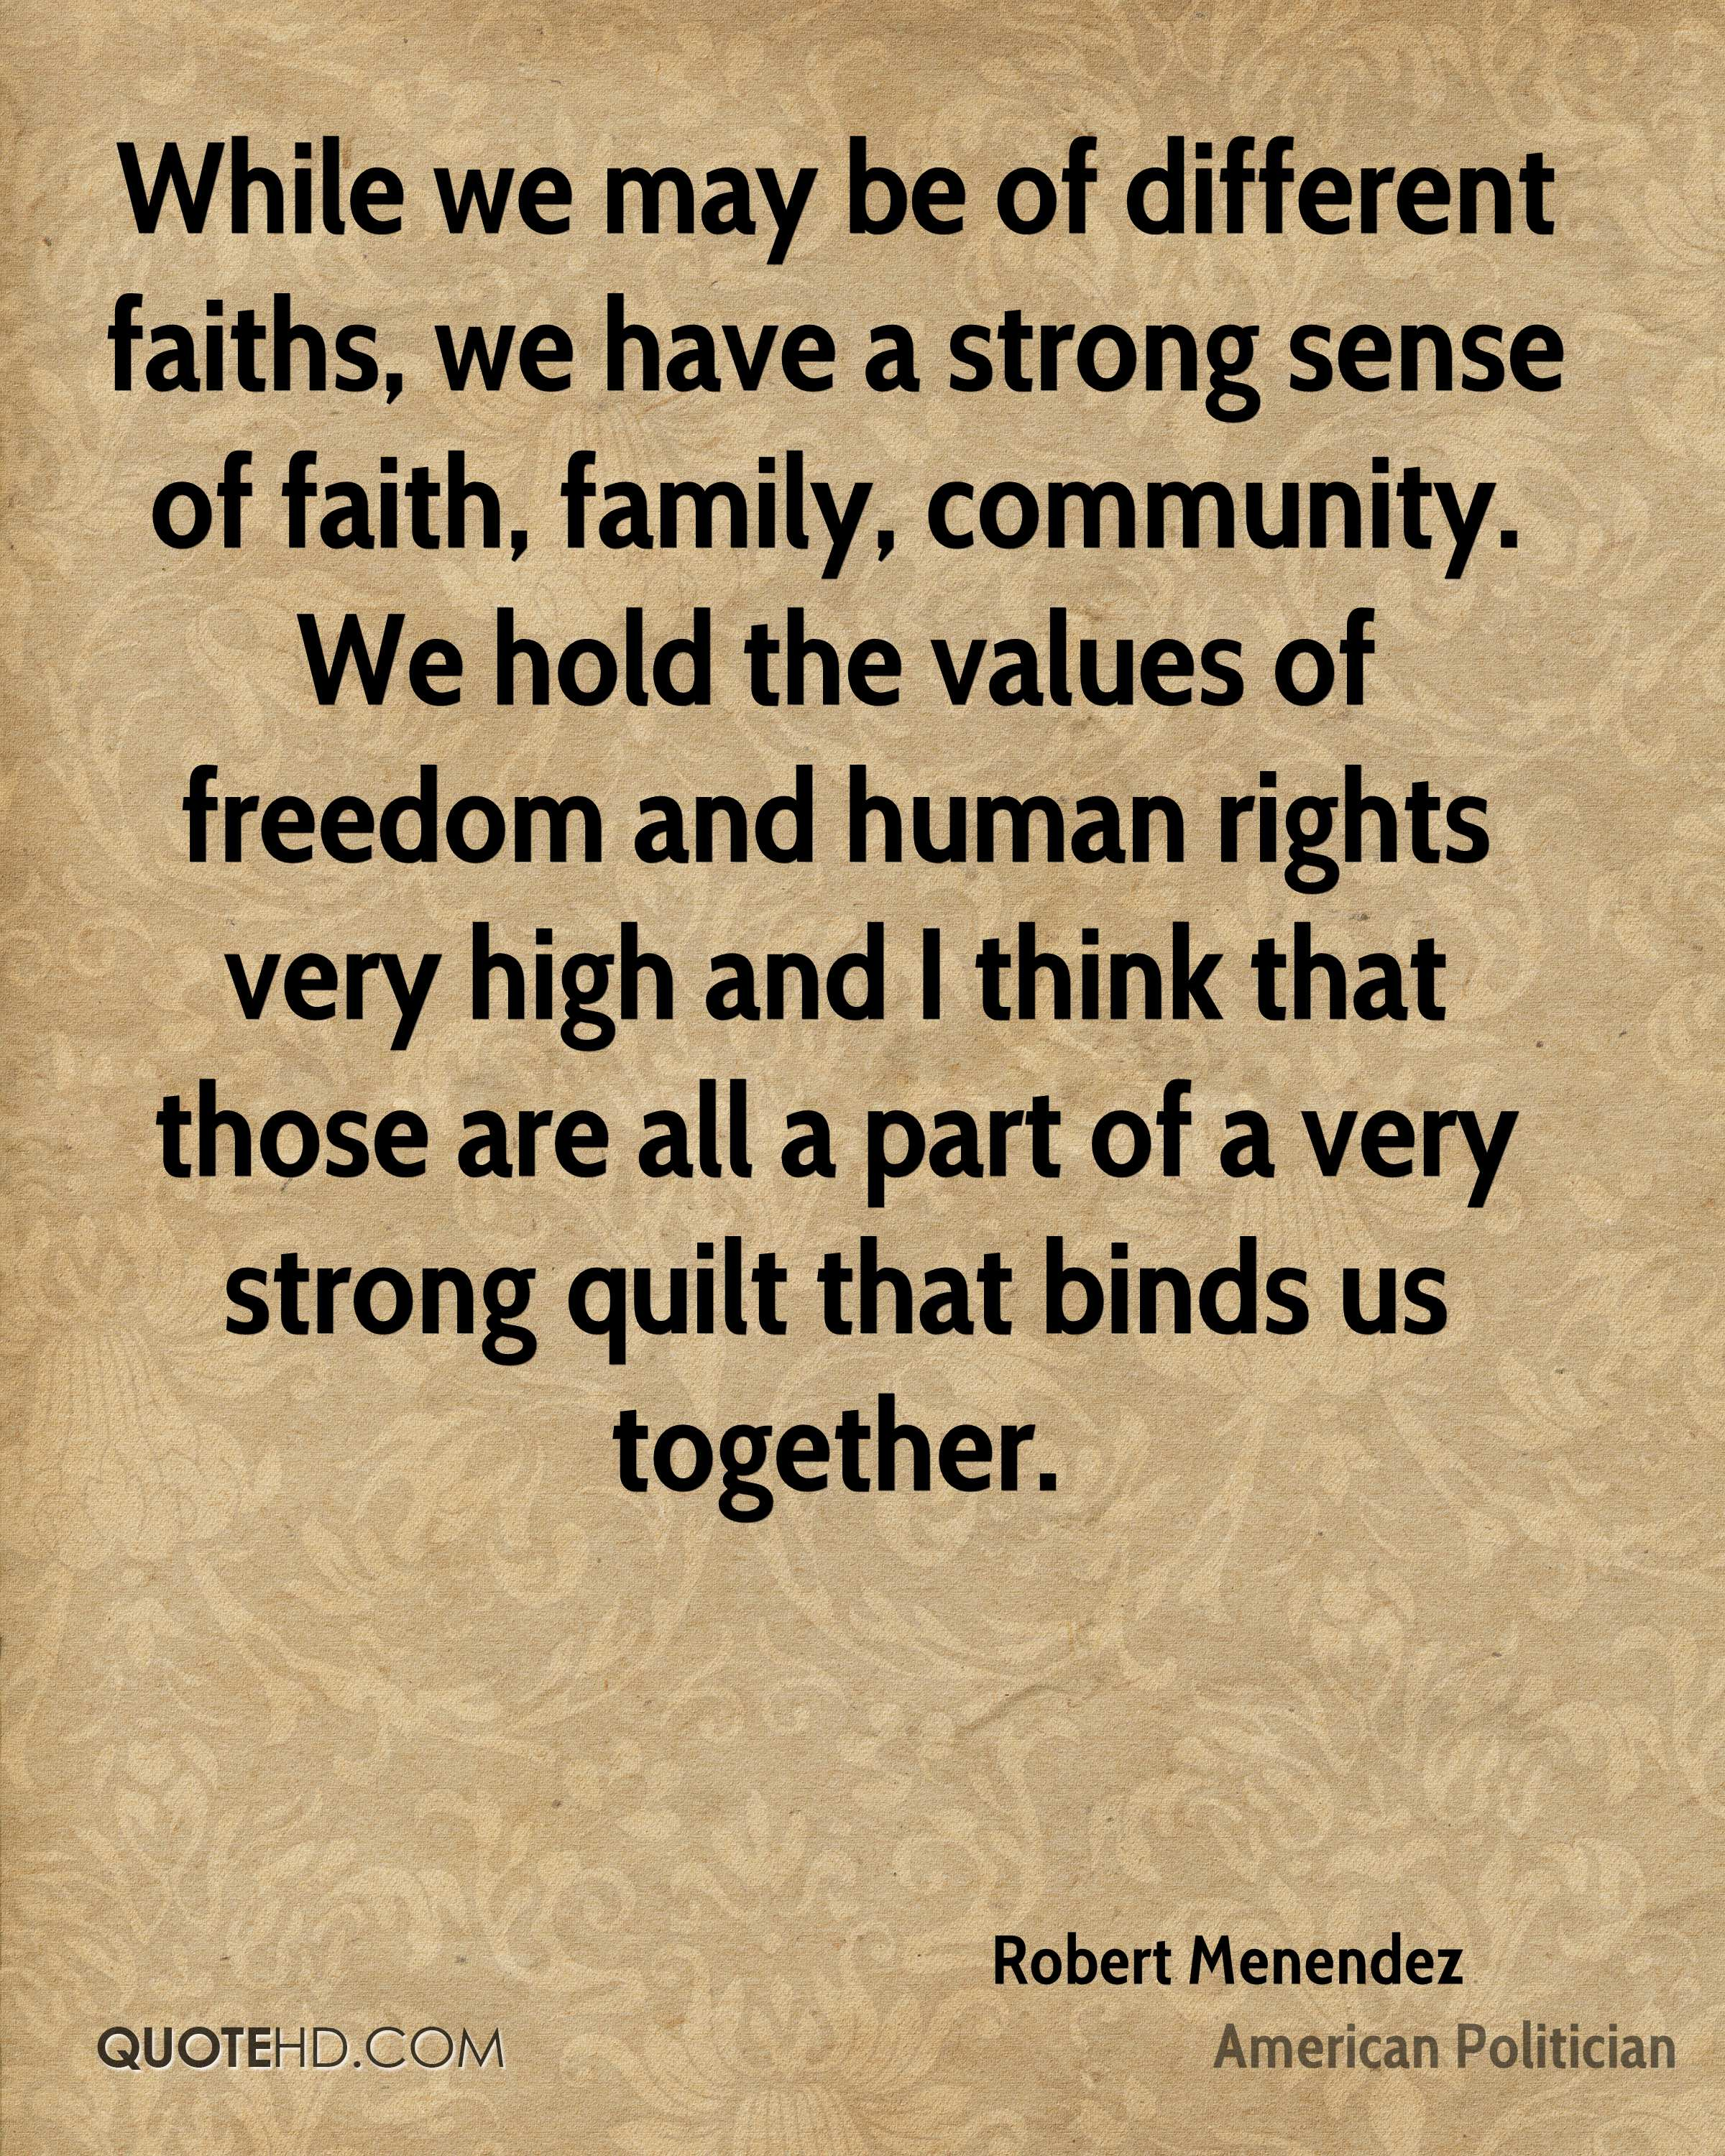 While we may be of different faiths, we have a strong sense of faith, family, community. We hold the values of freedom and human rights very high and I think that those are all a part of a very strong quilt that binds us together.